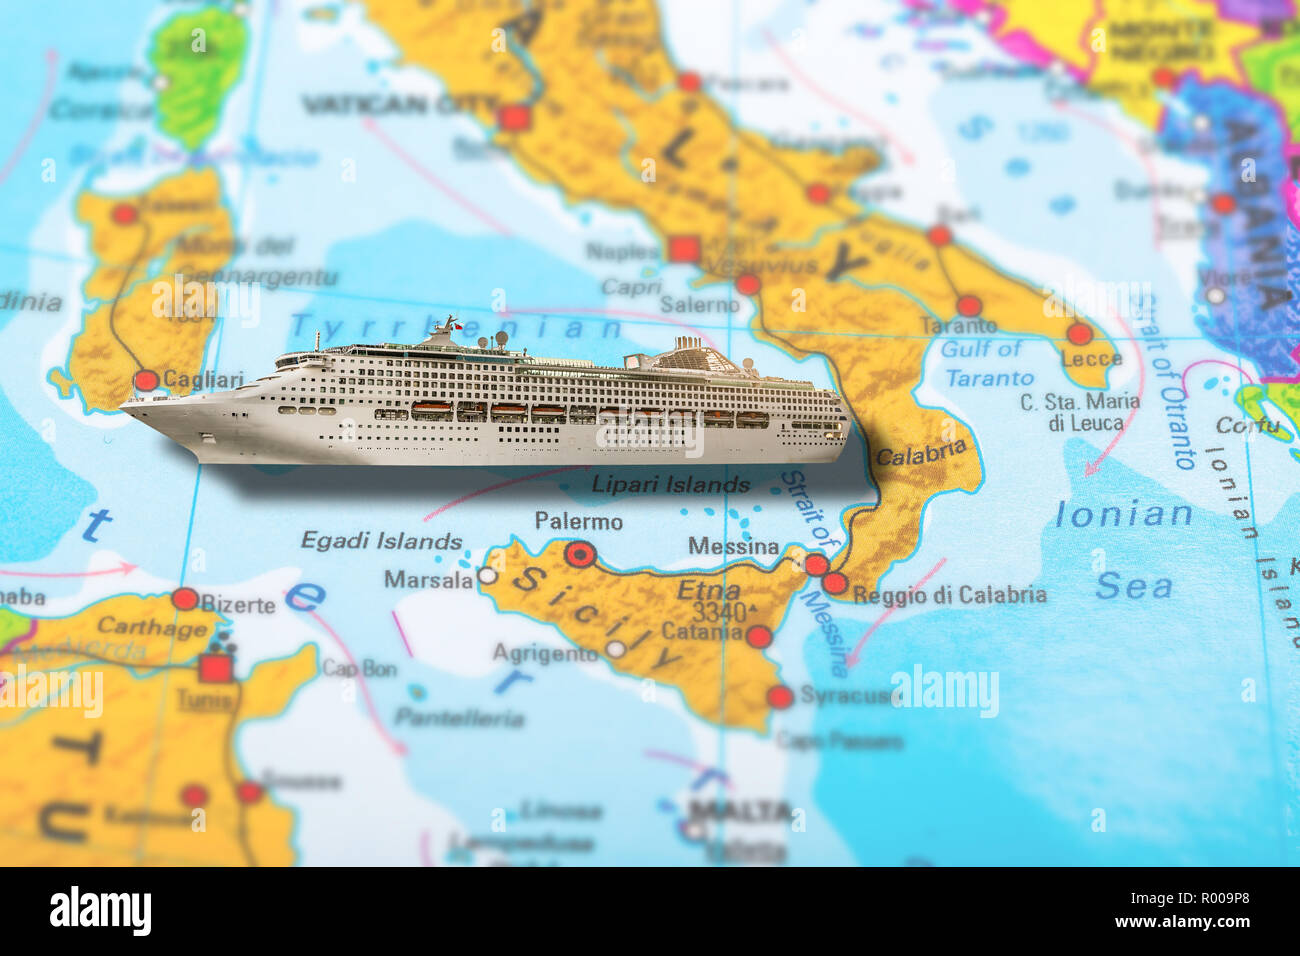 Cruise Ship Travel On Colorful Political Map Of Europe To Italy